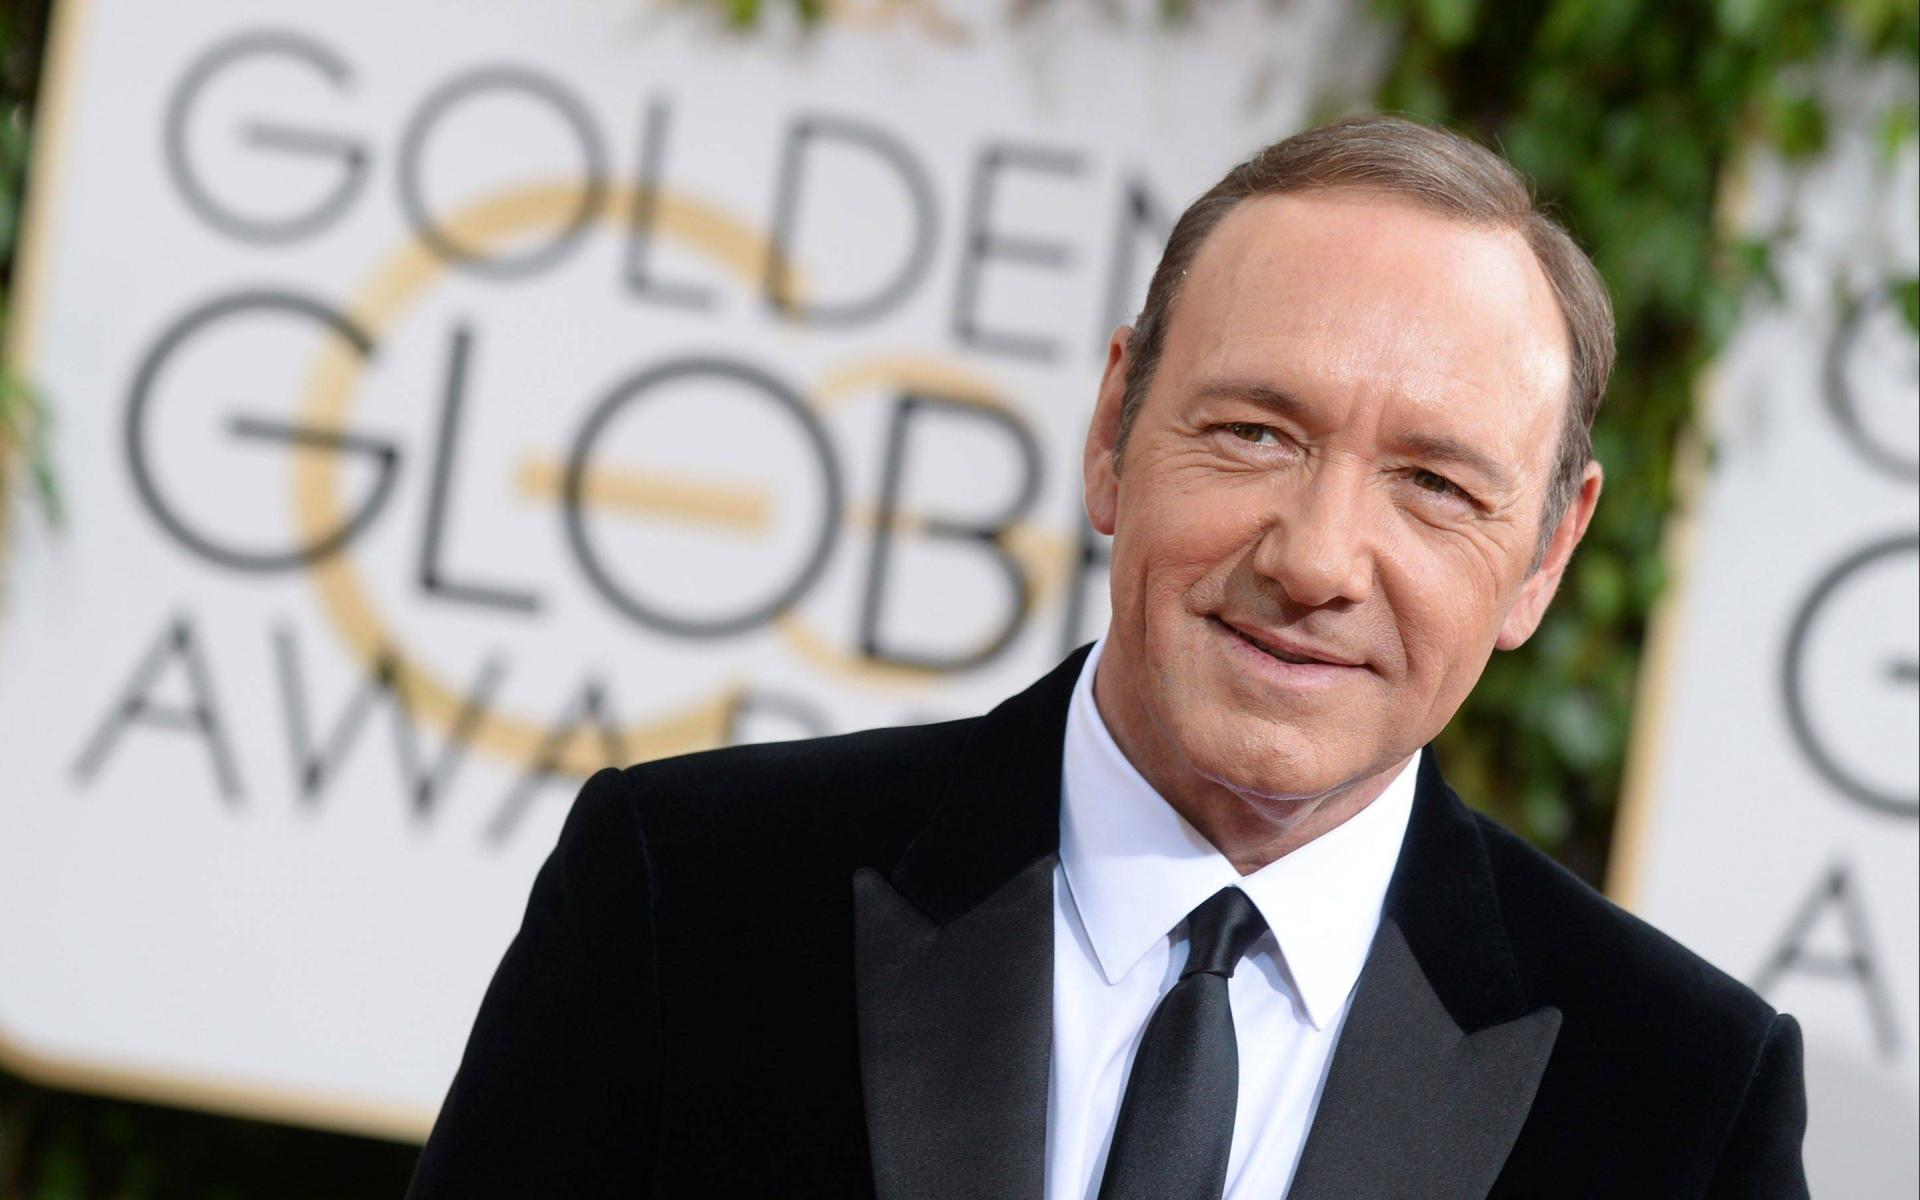 Kevin spacey wallpaper hd download - Spacey wallpaper ...